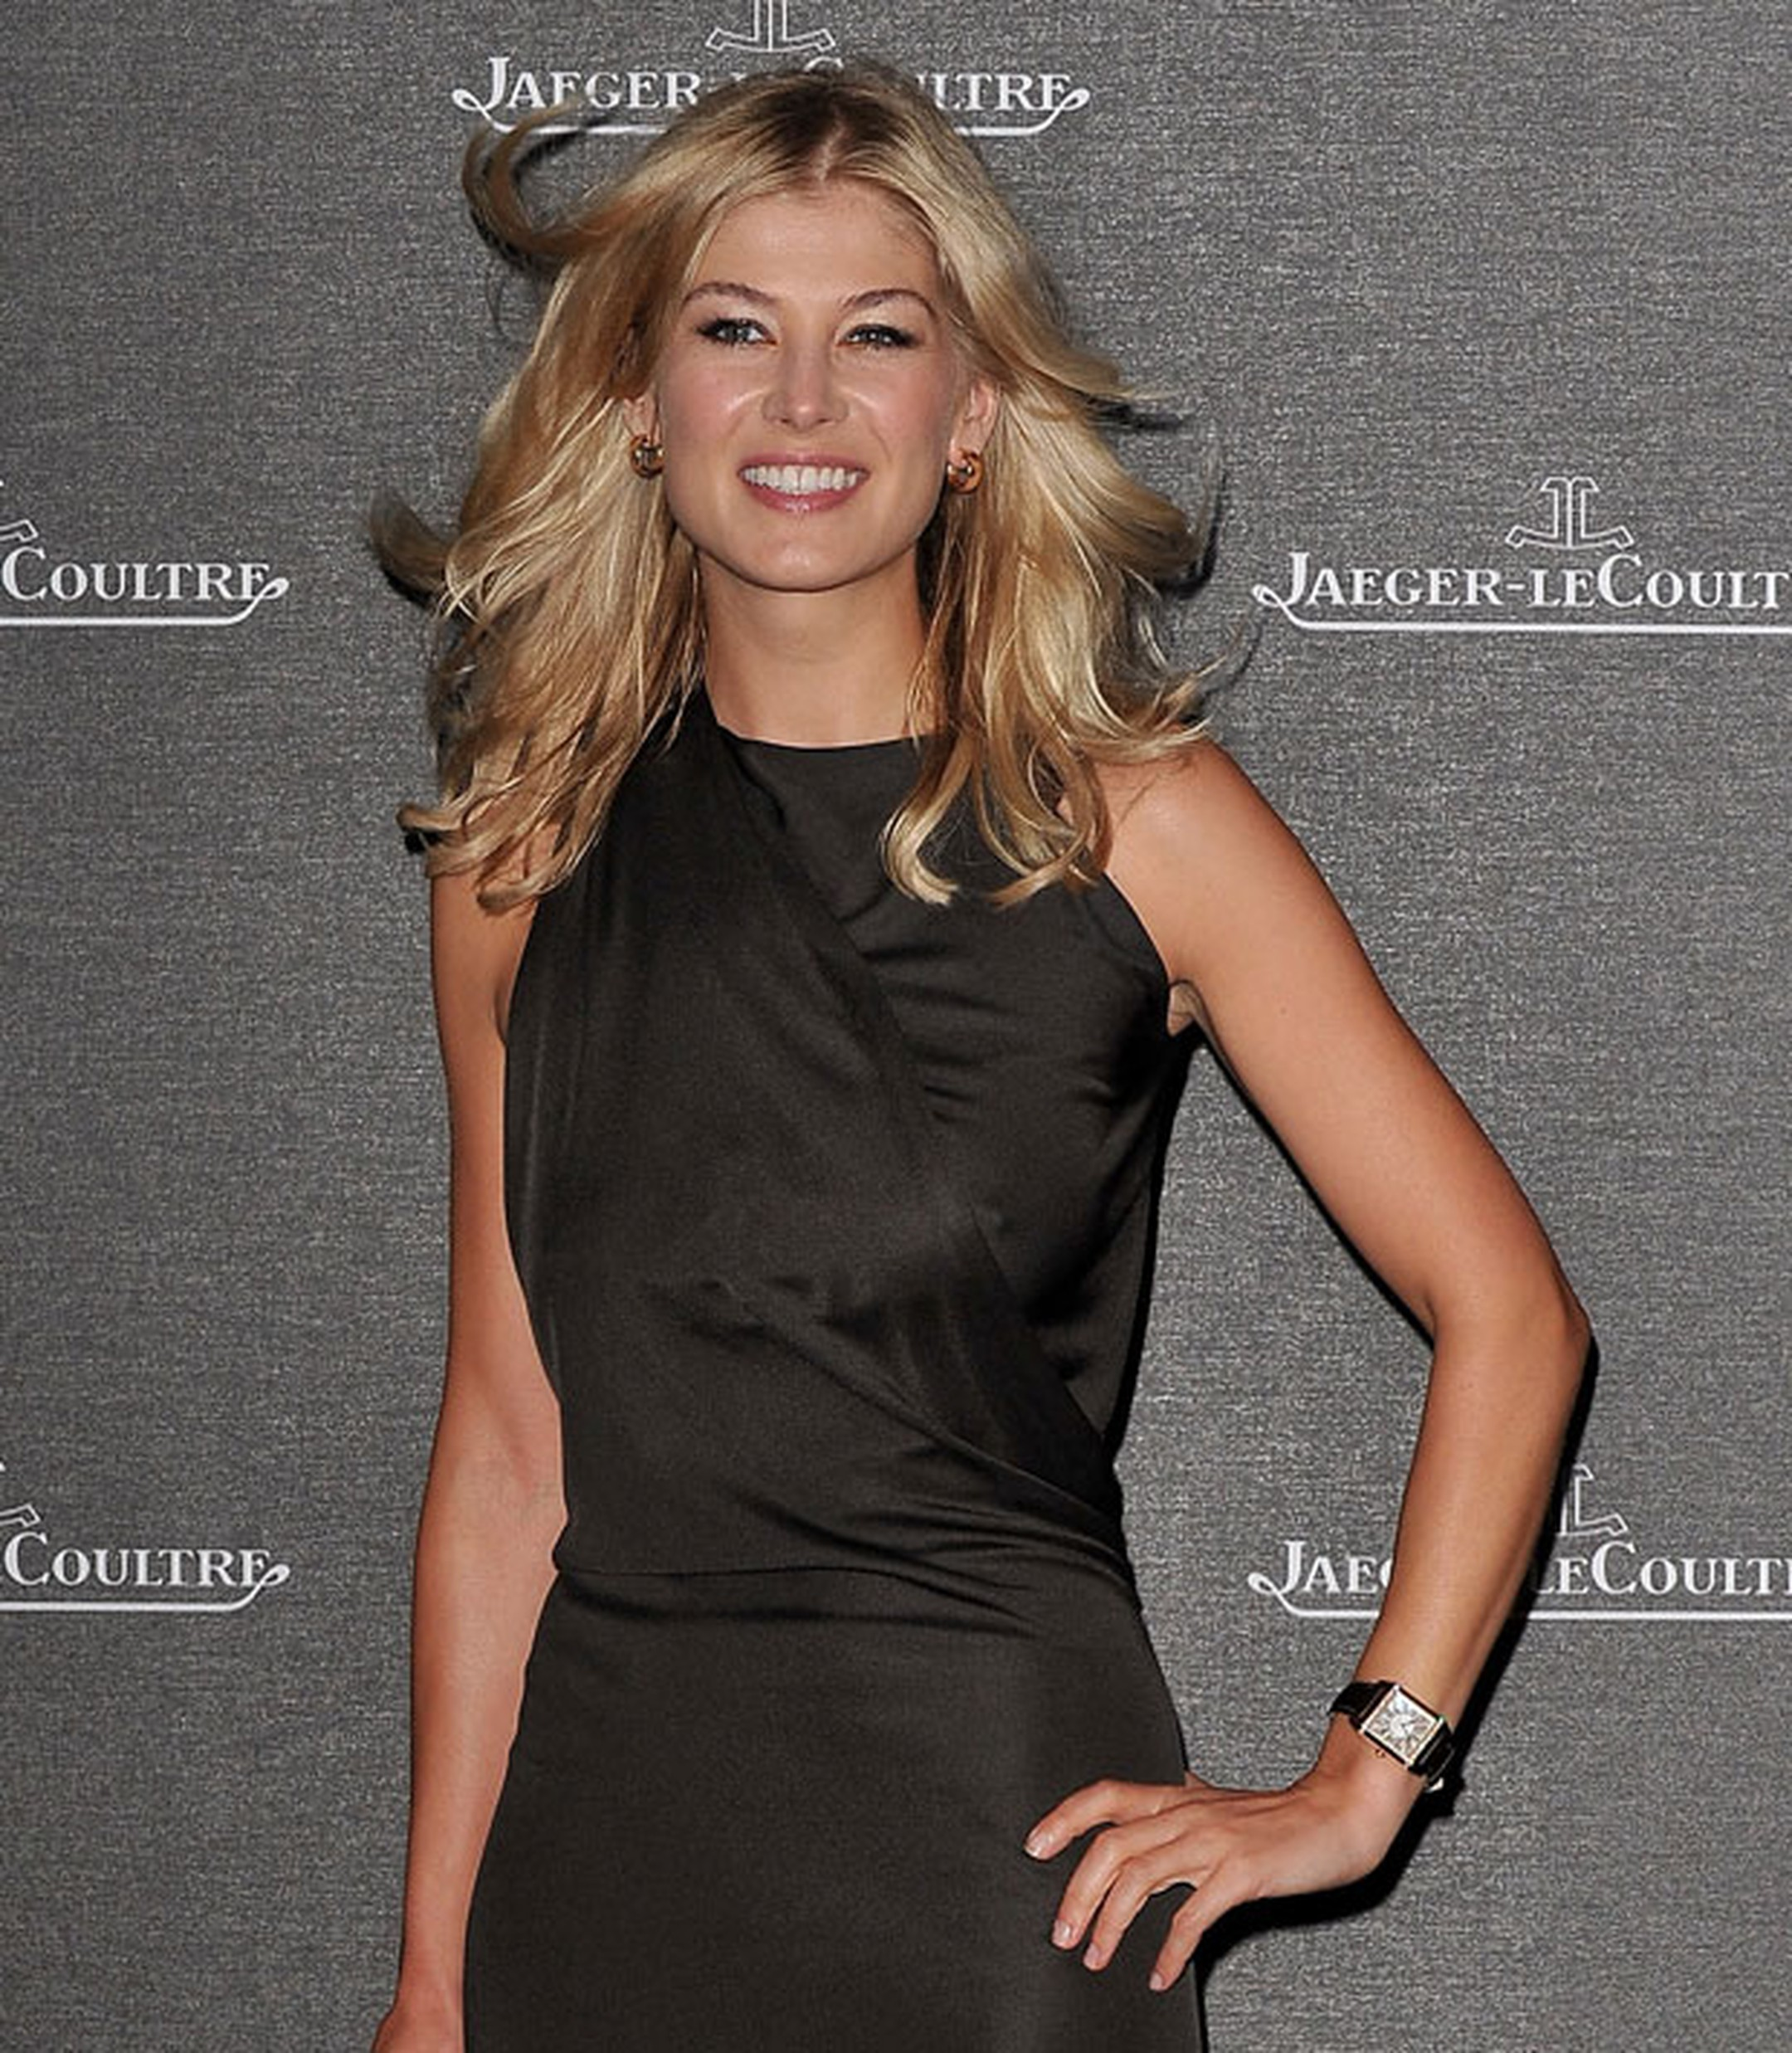 Rosamund Pike wears Jaeger-LeCoultre at Venice Film Festival